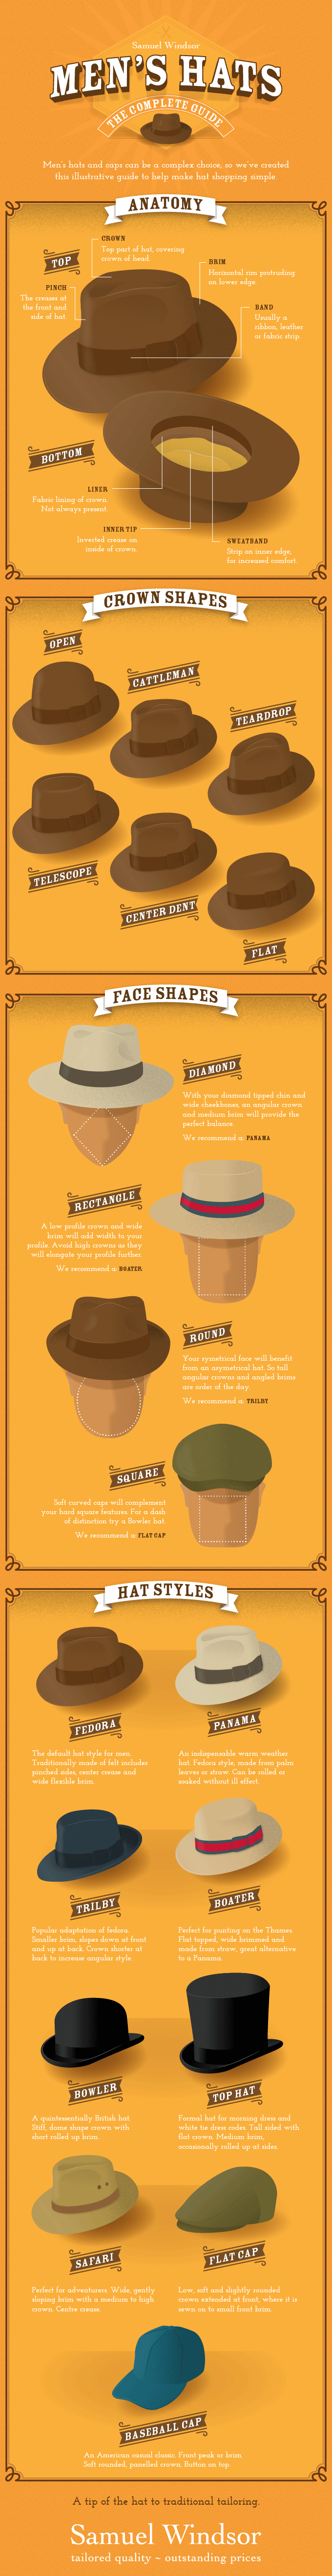 Men's Hats - The Complete Guide infographic